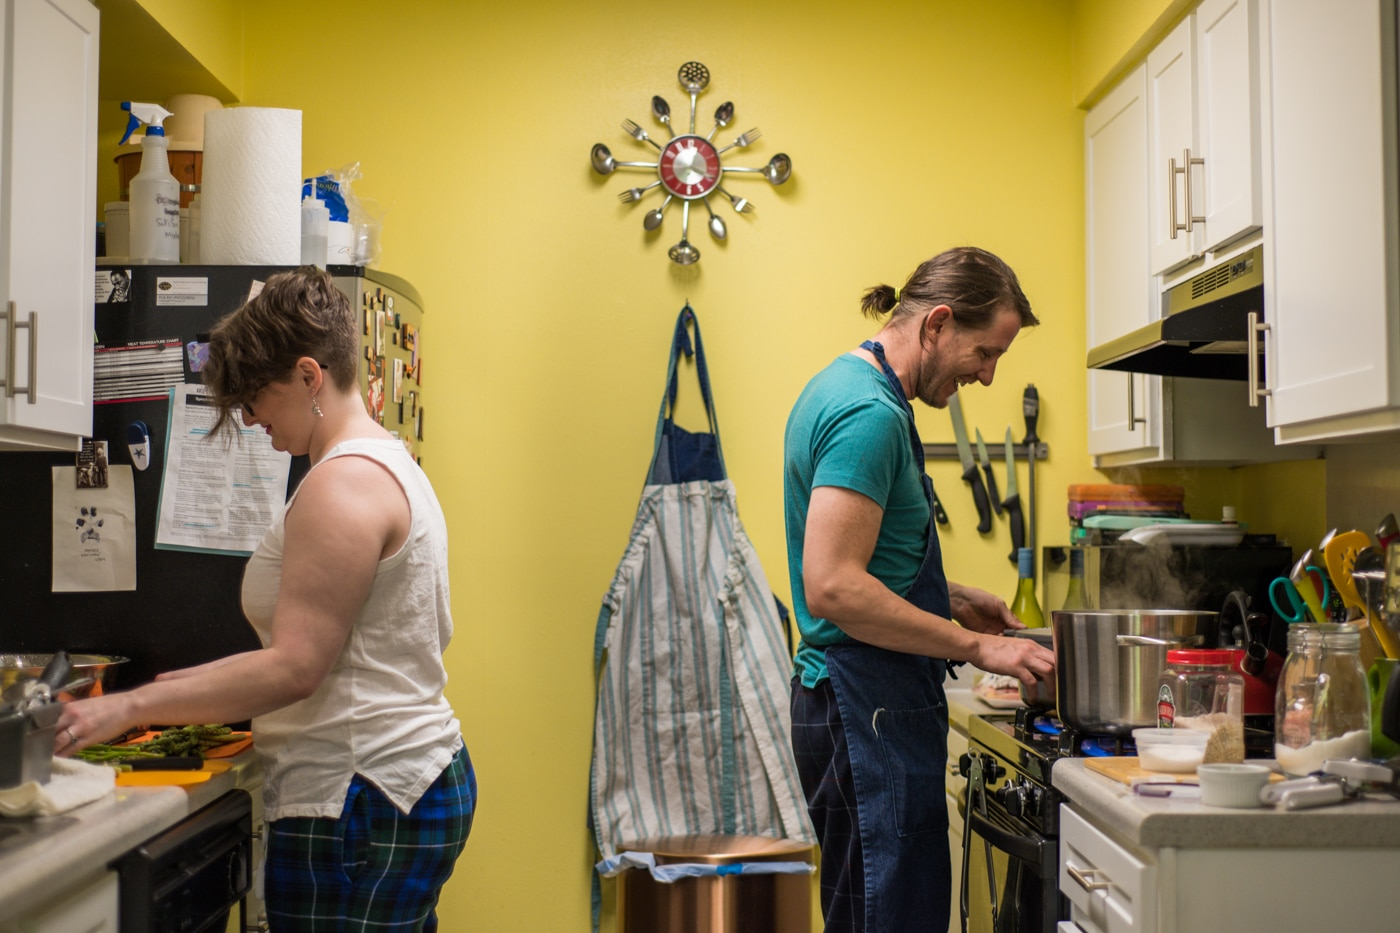 couple cooks in kitchen with yellow walls